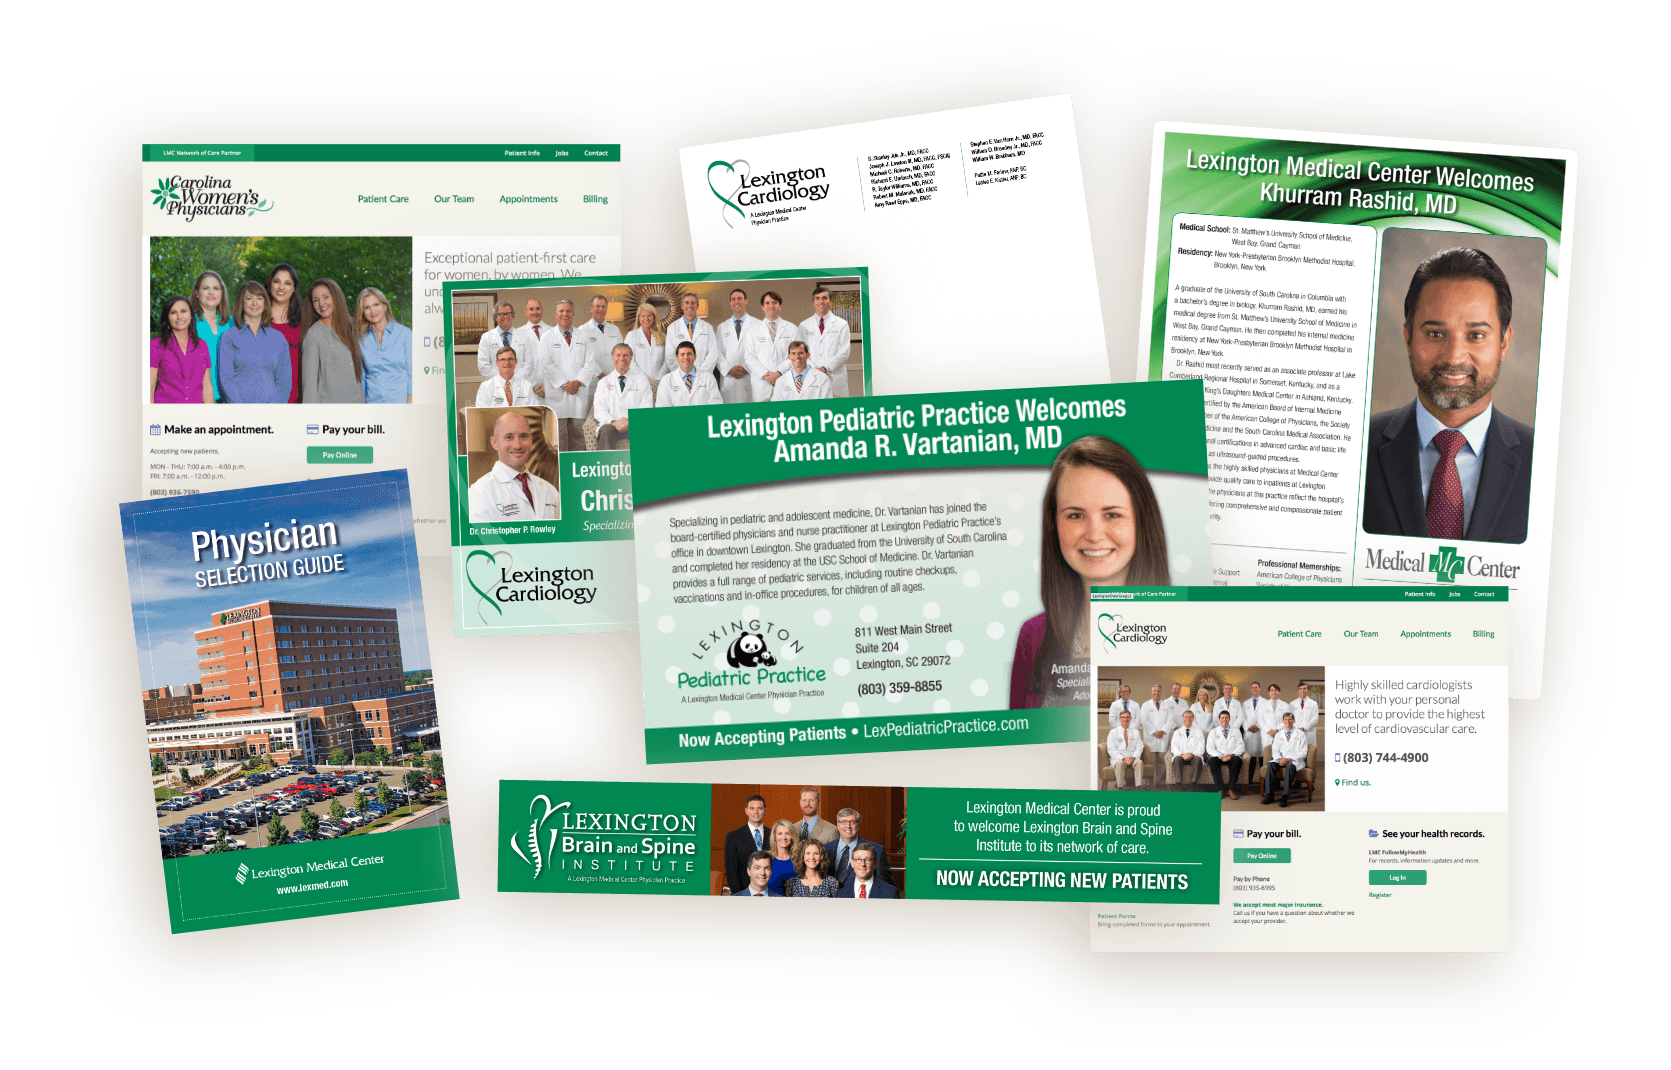 Collage of hospital marketing materials including websites, physician selection guide, direct mail, forms and letterhead featuring practice teams, services and individual physicians.